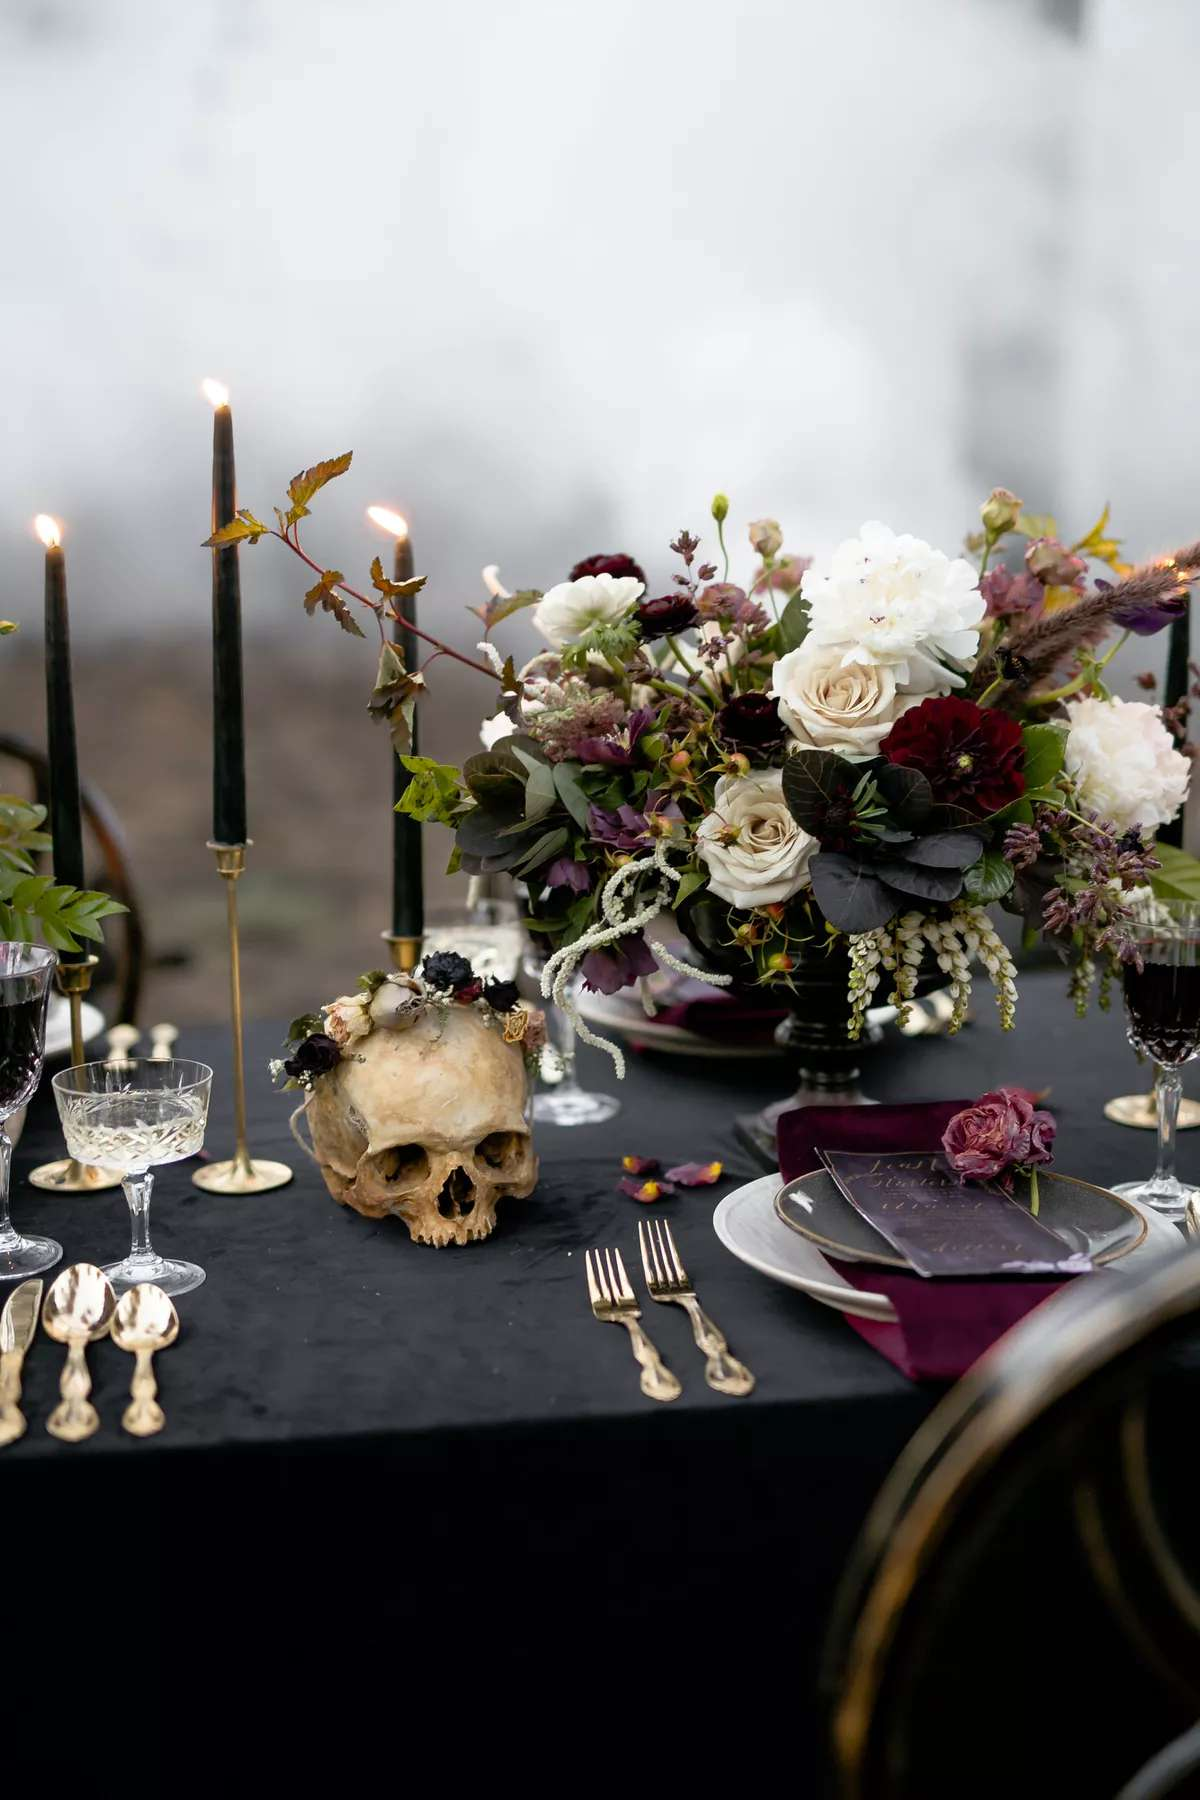 Table decorated with dark colors and a skull